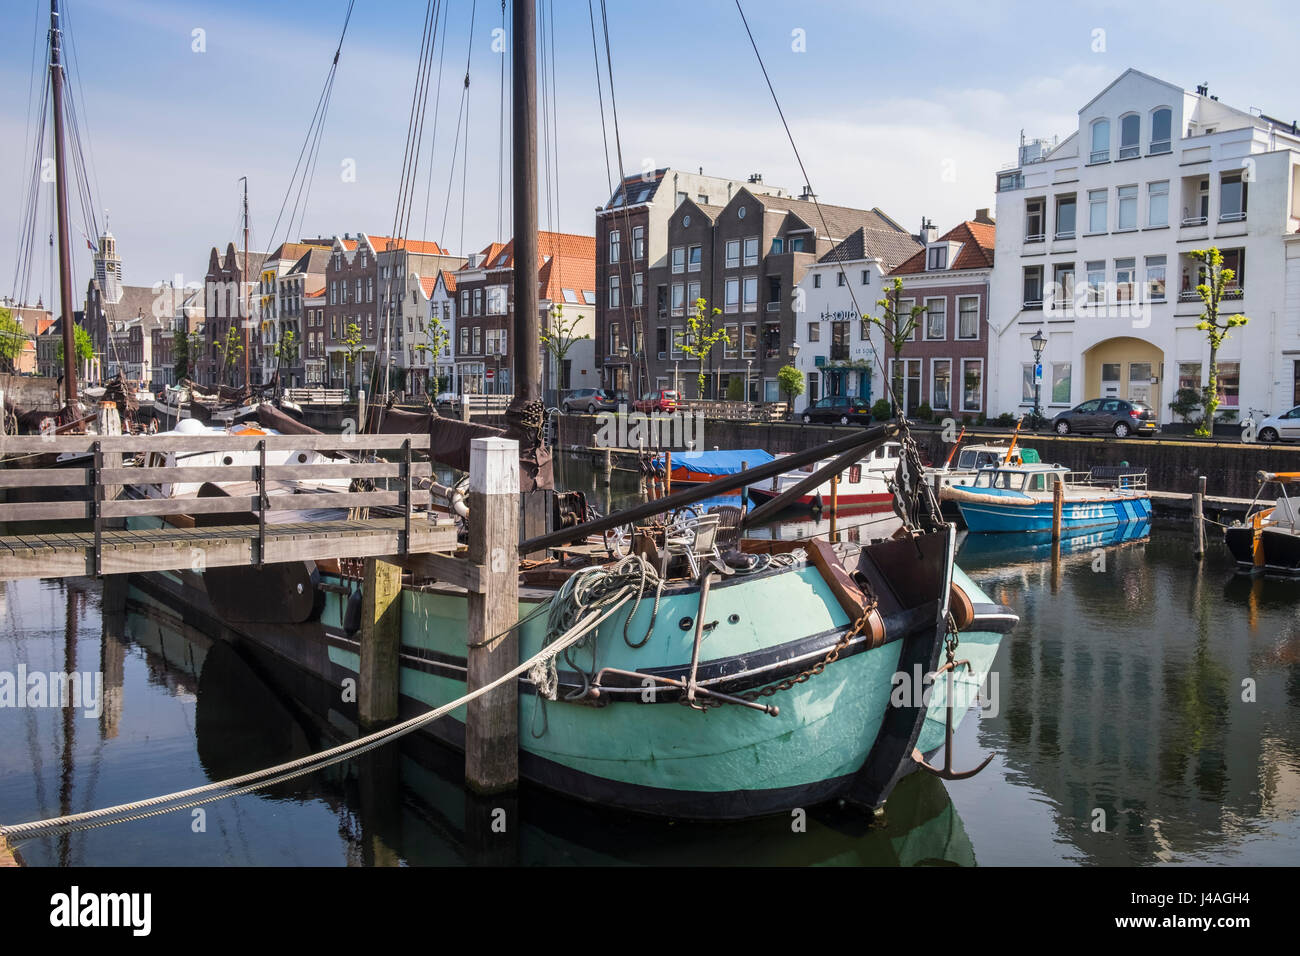 Boats moored in the historic area of Delfshaven, Rotterdam, The Netherlands Stock Photo